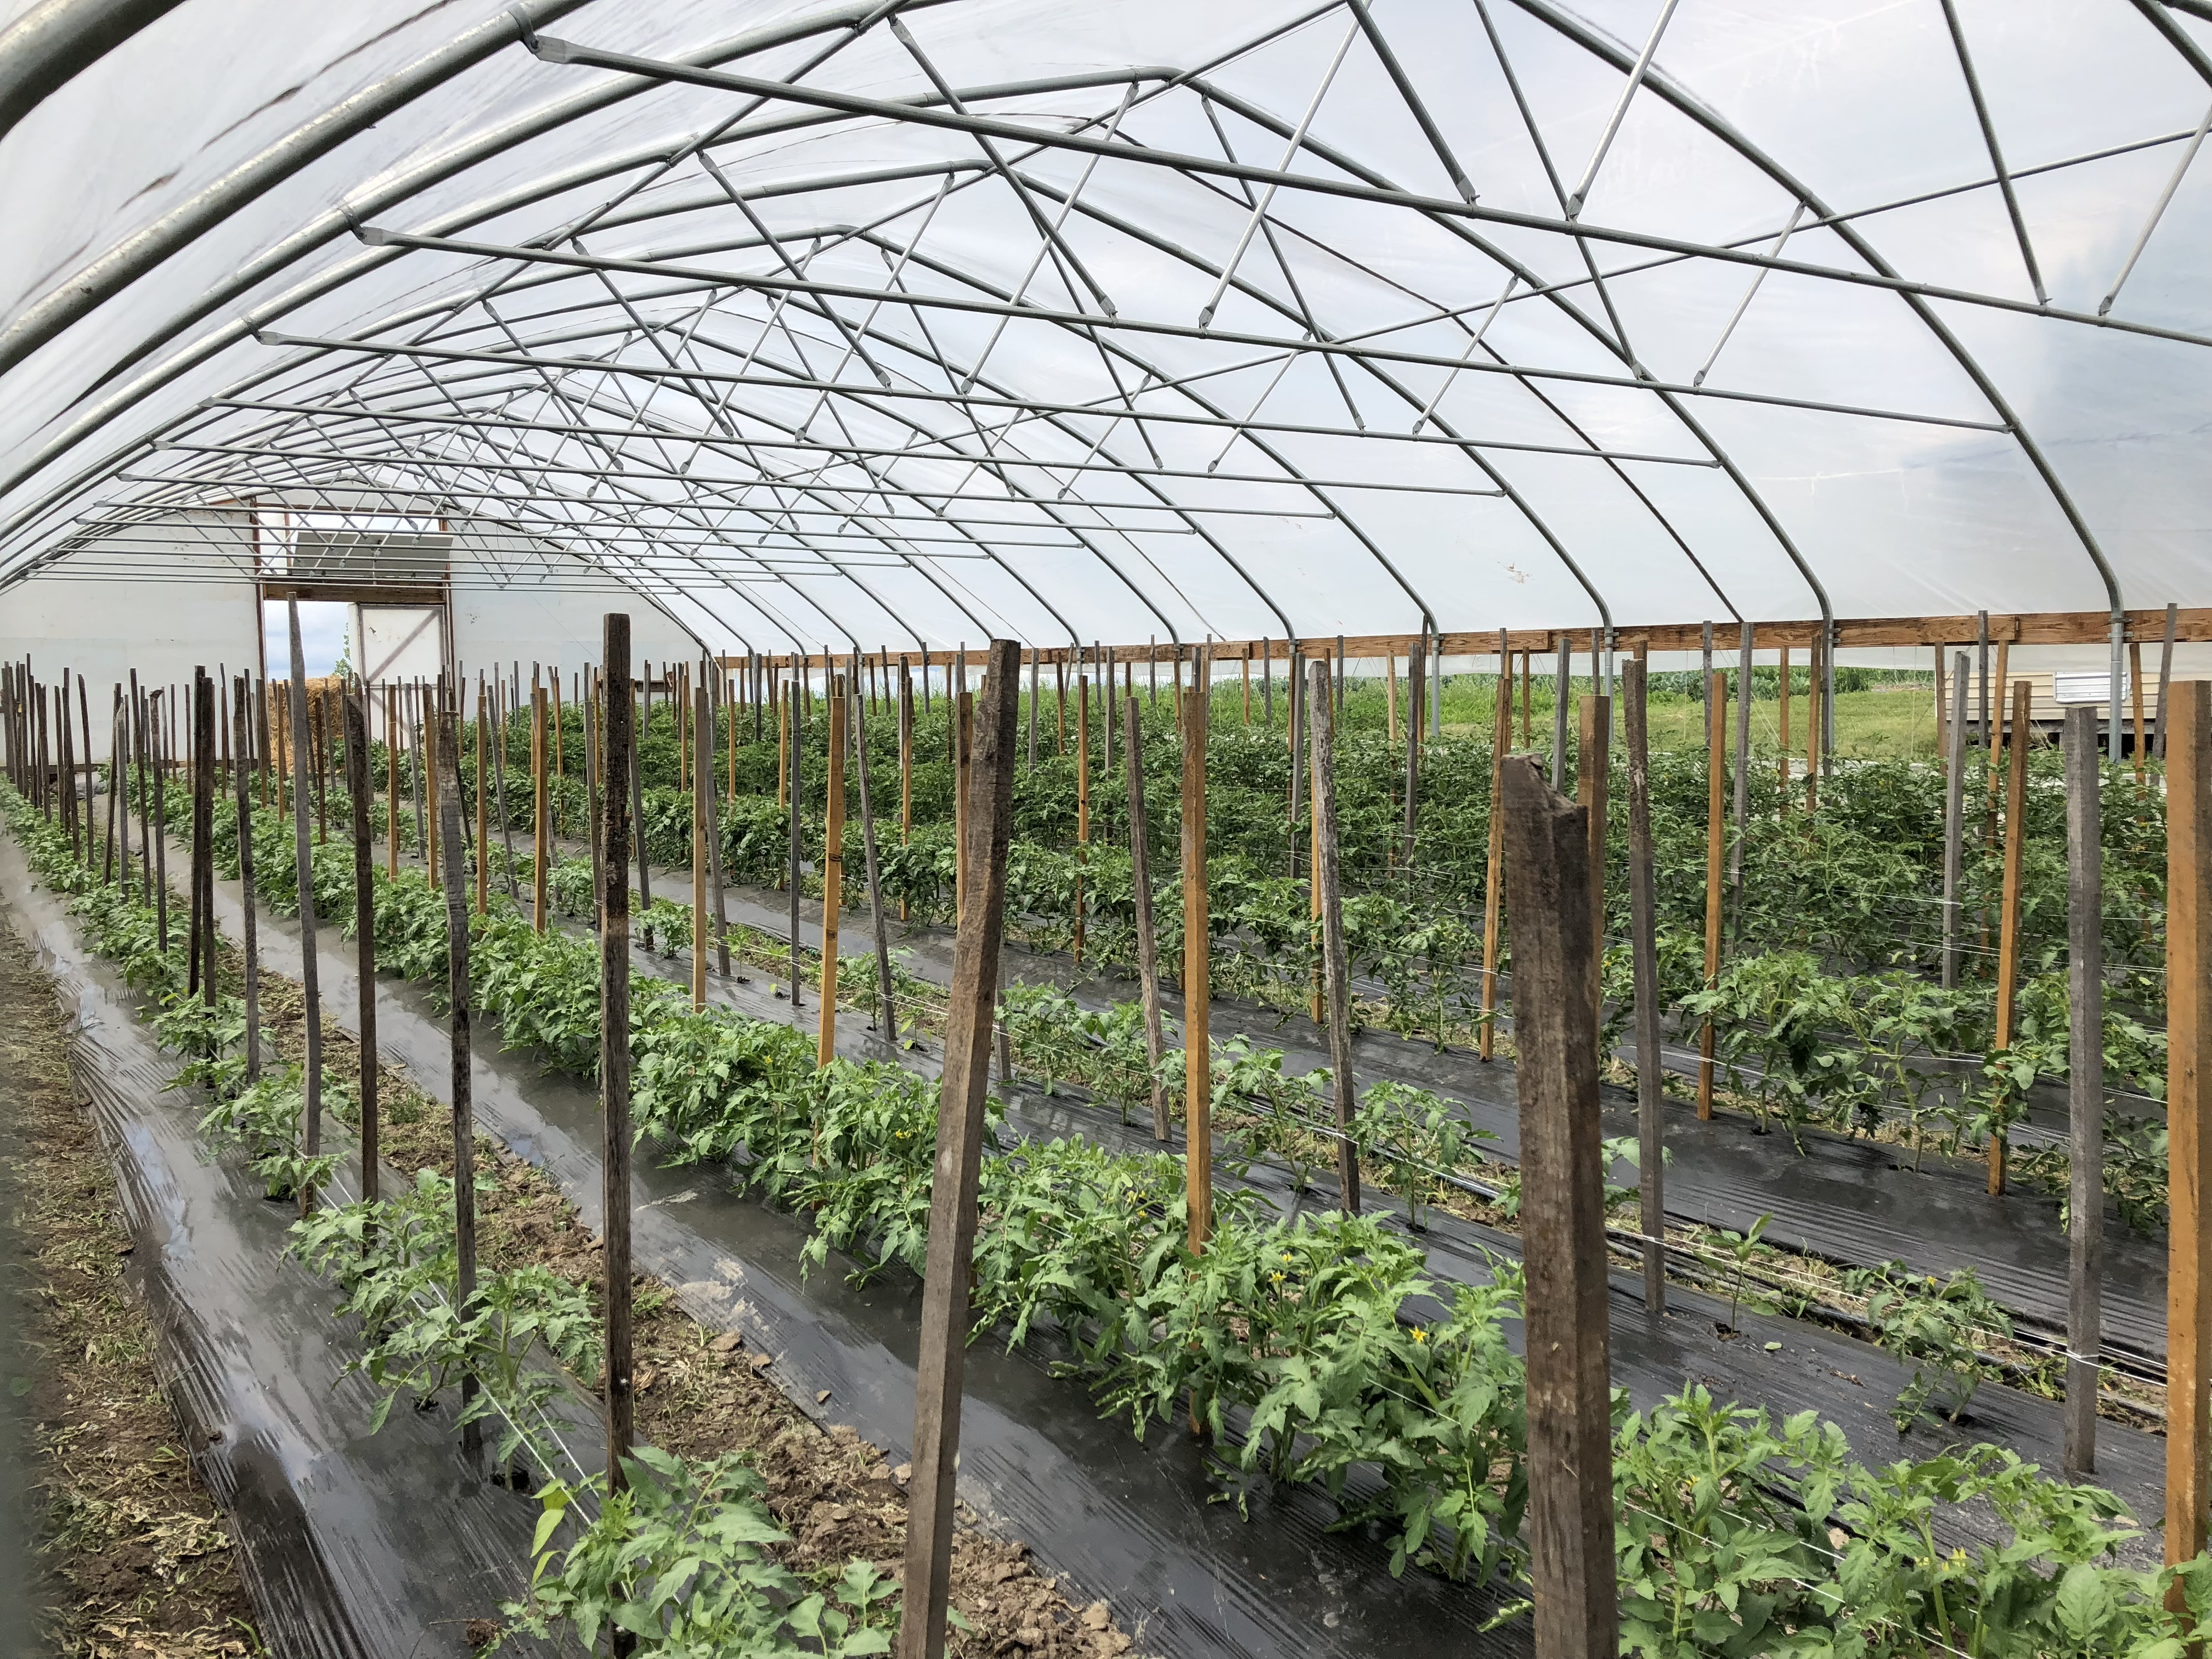 Winter planted produce in high tunnels on Fruitful Hills farms near Trenton, Missouri